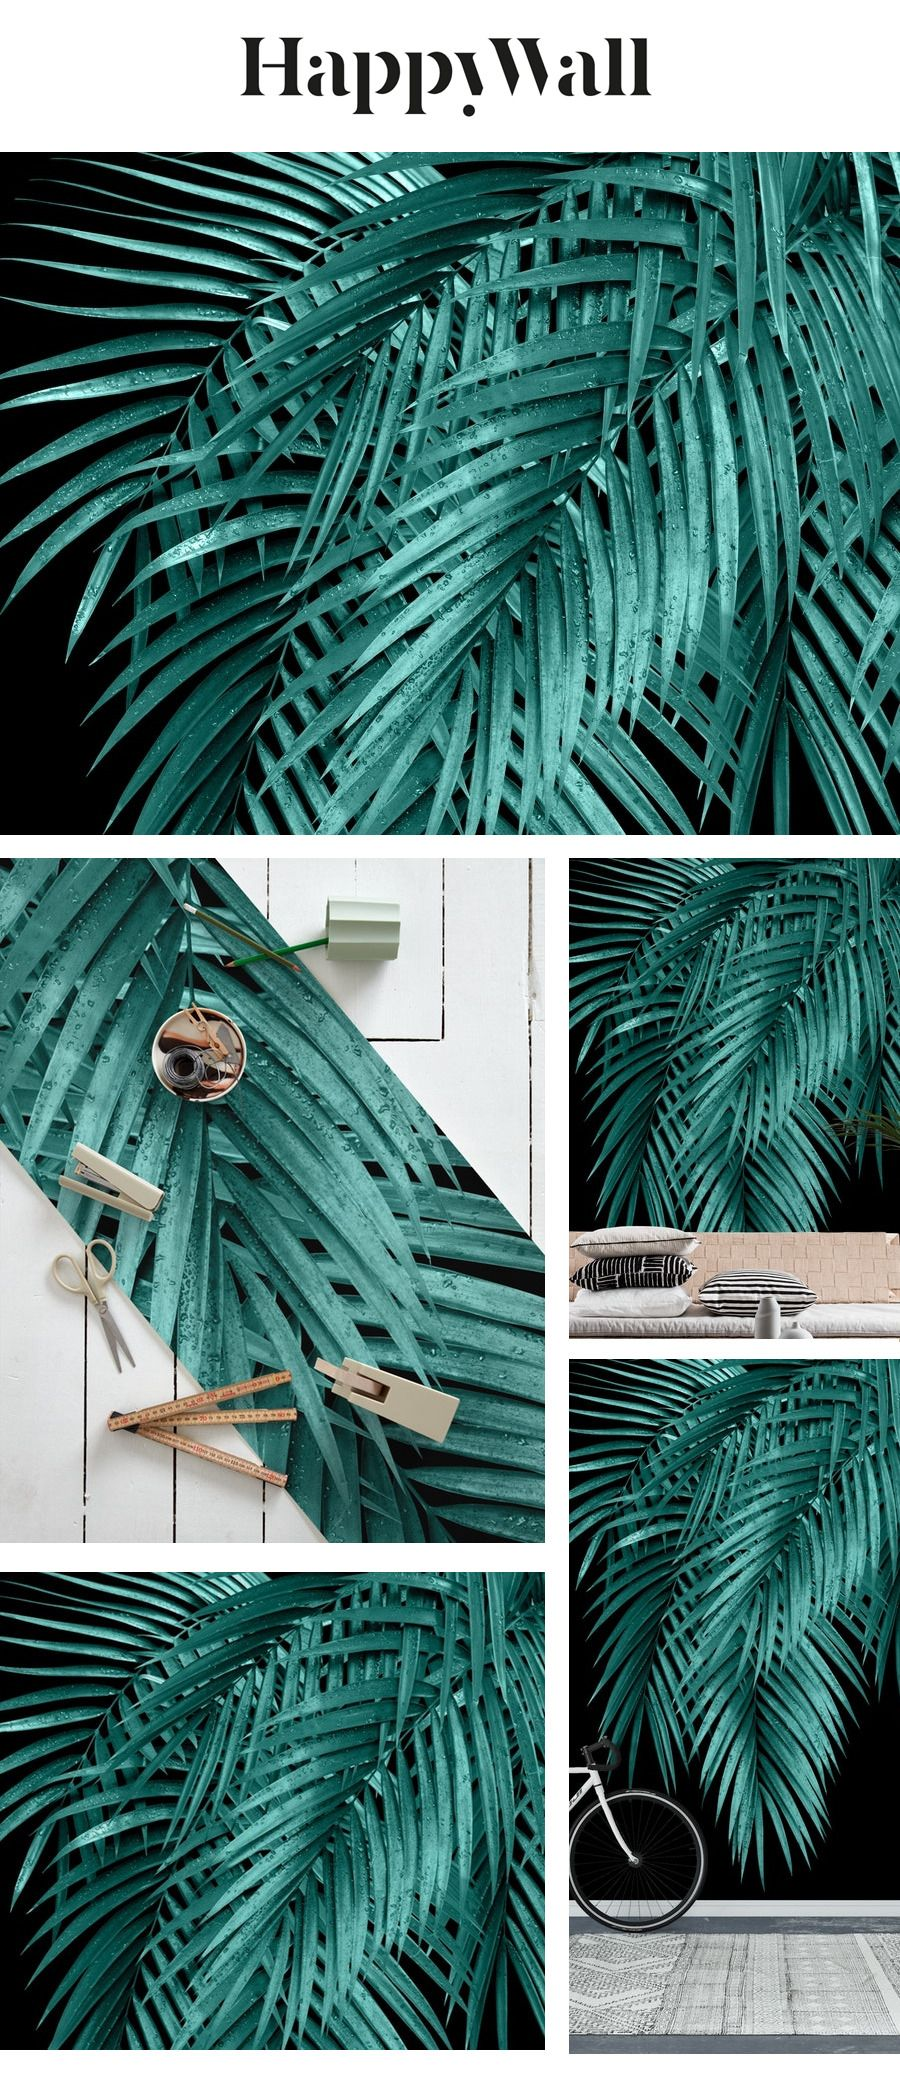 Palm Leaves Teal Night Vibes 1 Wall mural in 2020 Summer